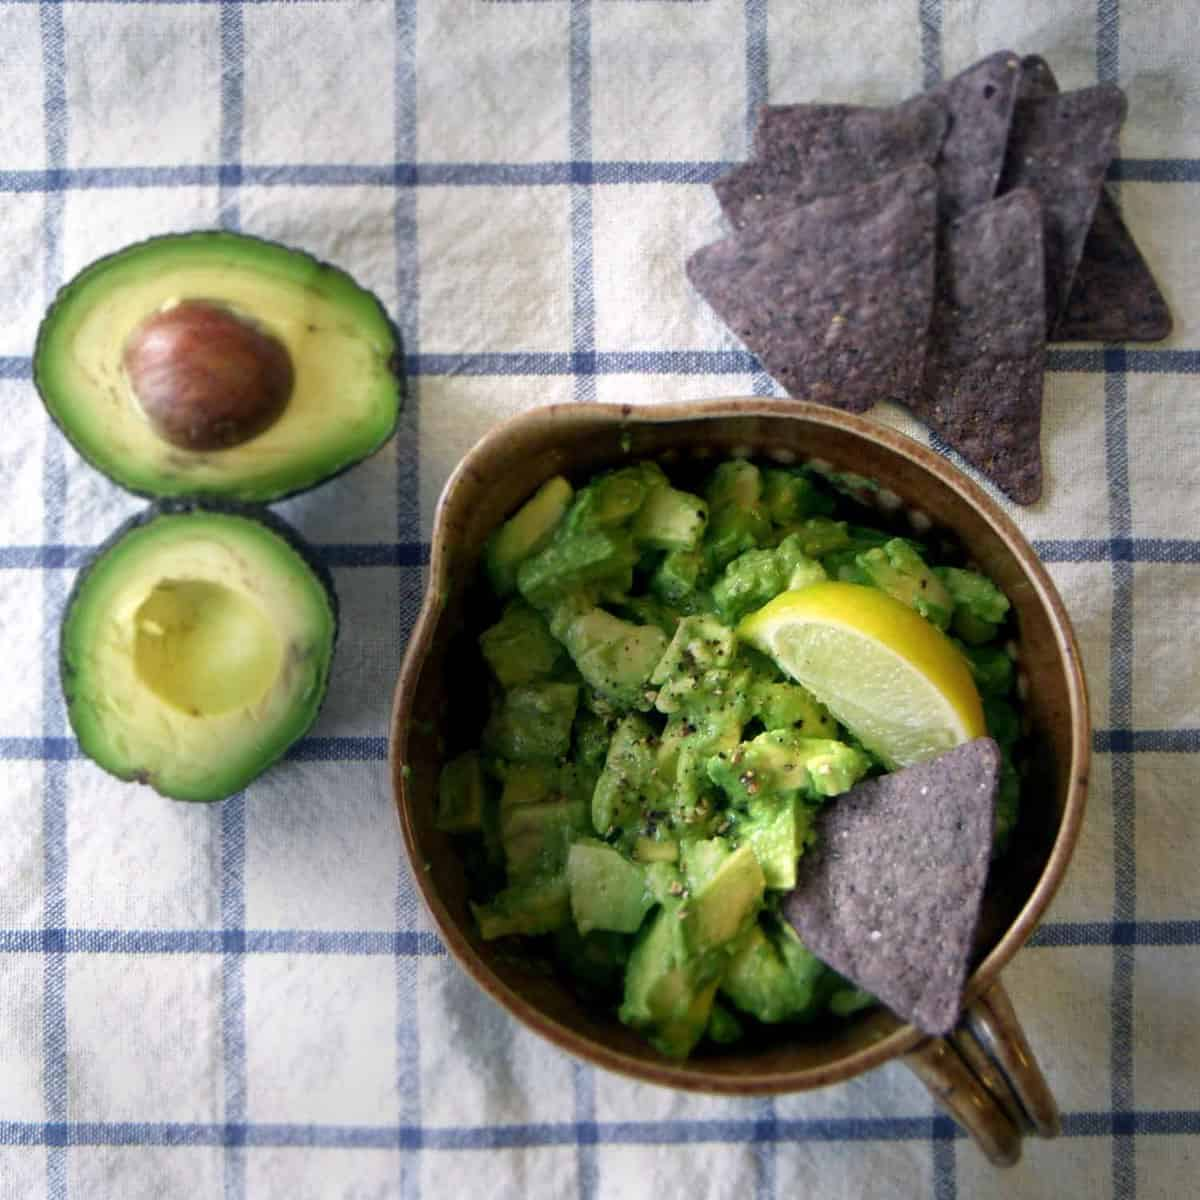 Bird's eye view of avocado salsa in brown ceramic bowl, surrounded by halved avocados and tortilla chips.